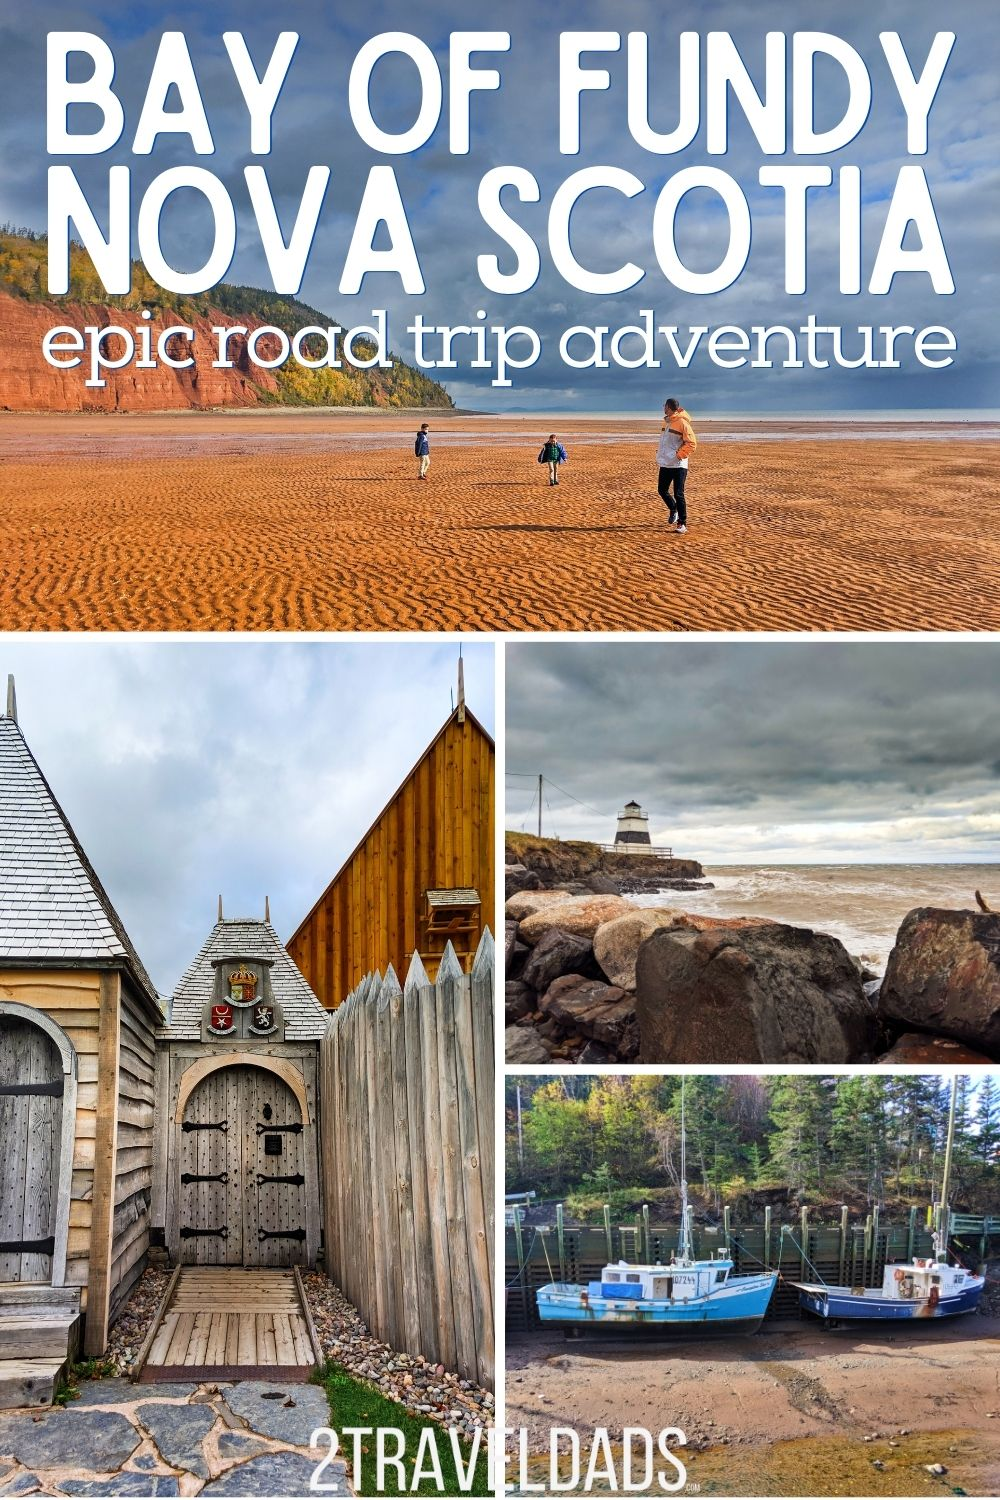 The northern shore of Nova Scotia is one of the most beautiful places we've traveled and it's perfect for a Nova Scotia road trip. The Bay of Fundy is home to both the most aggressive tides on earth and some of the epic sights. And the top pick for a lobster meal that you'd never expect...